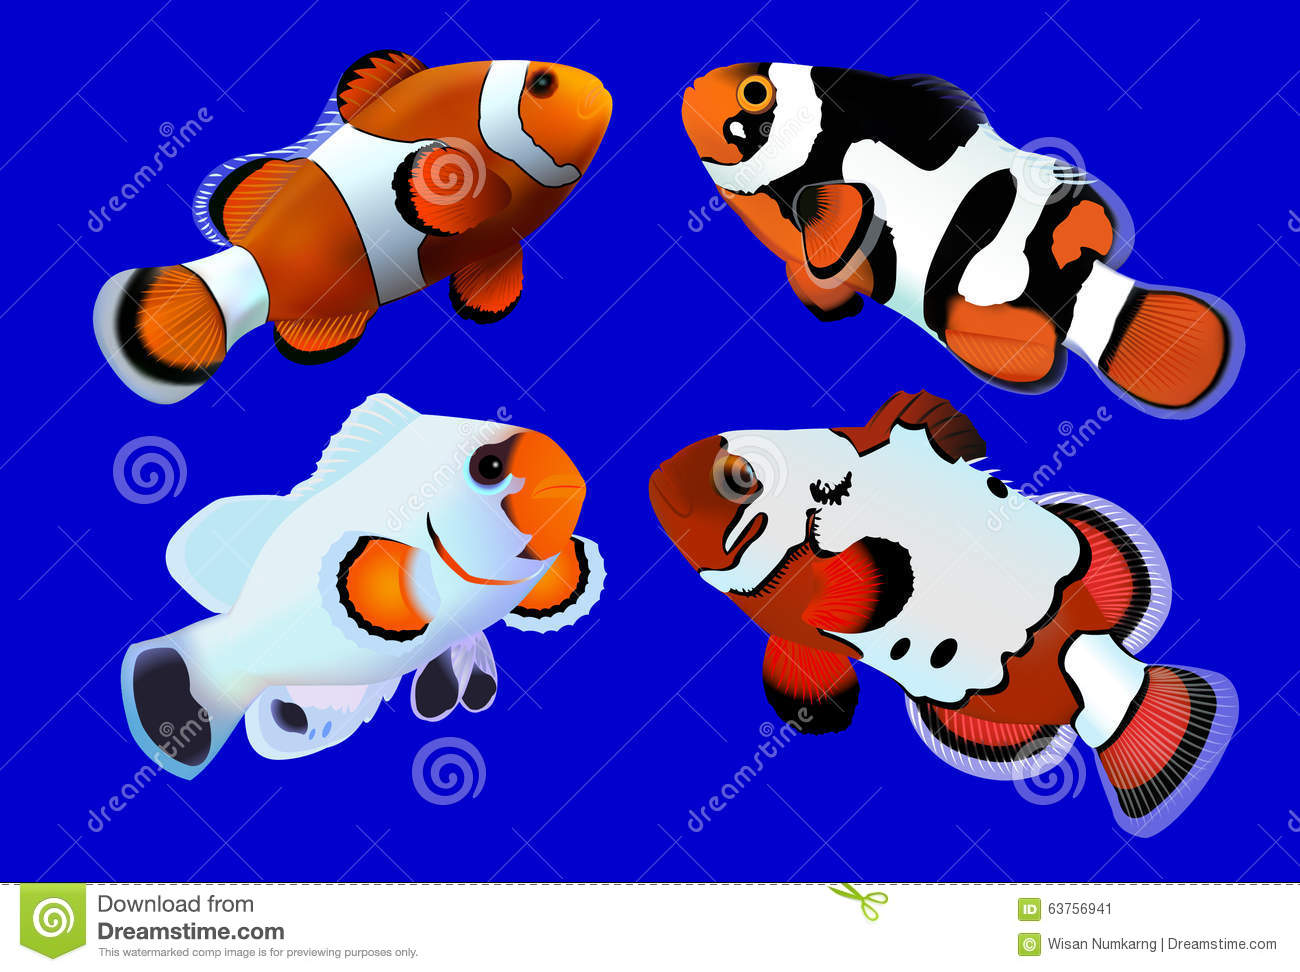 Four Clownfishes With Blue Background Stock Vector - Image: 63756941